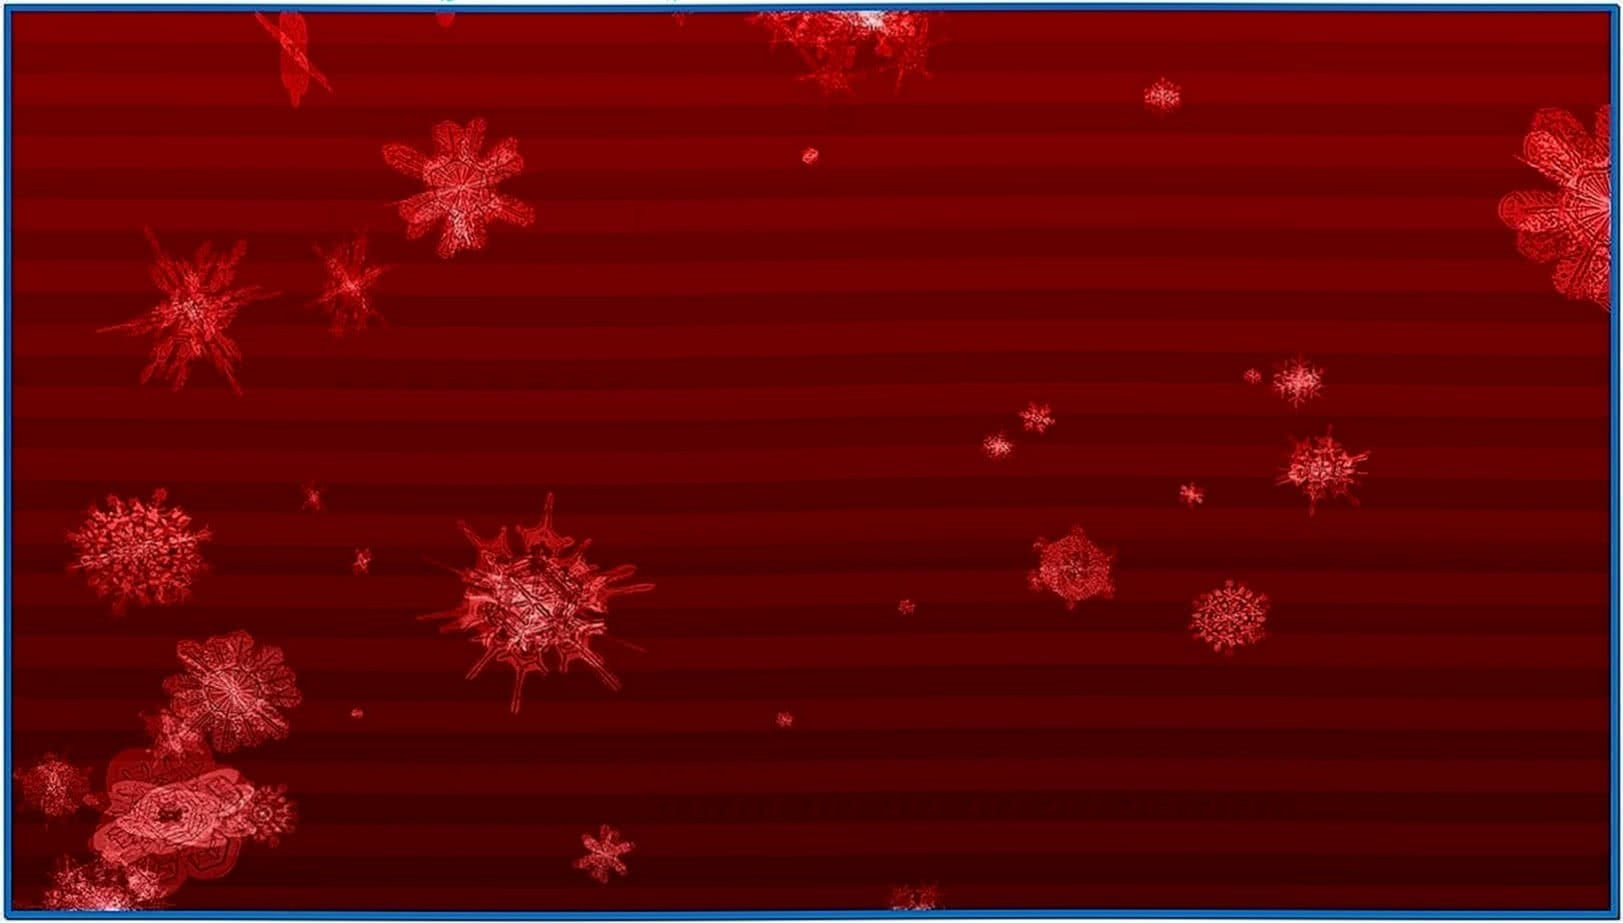 Free Christmas Screensavers With Sound | Healty Living Guide